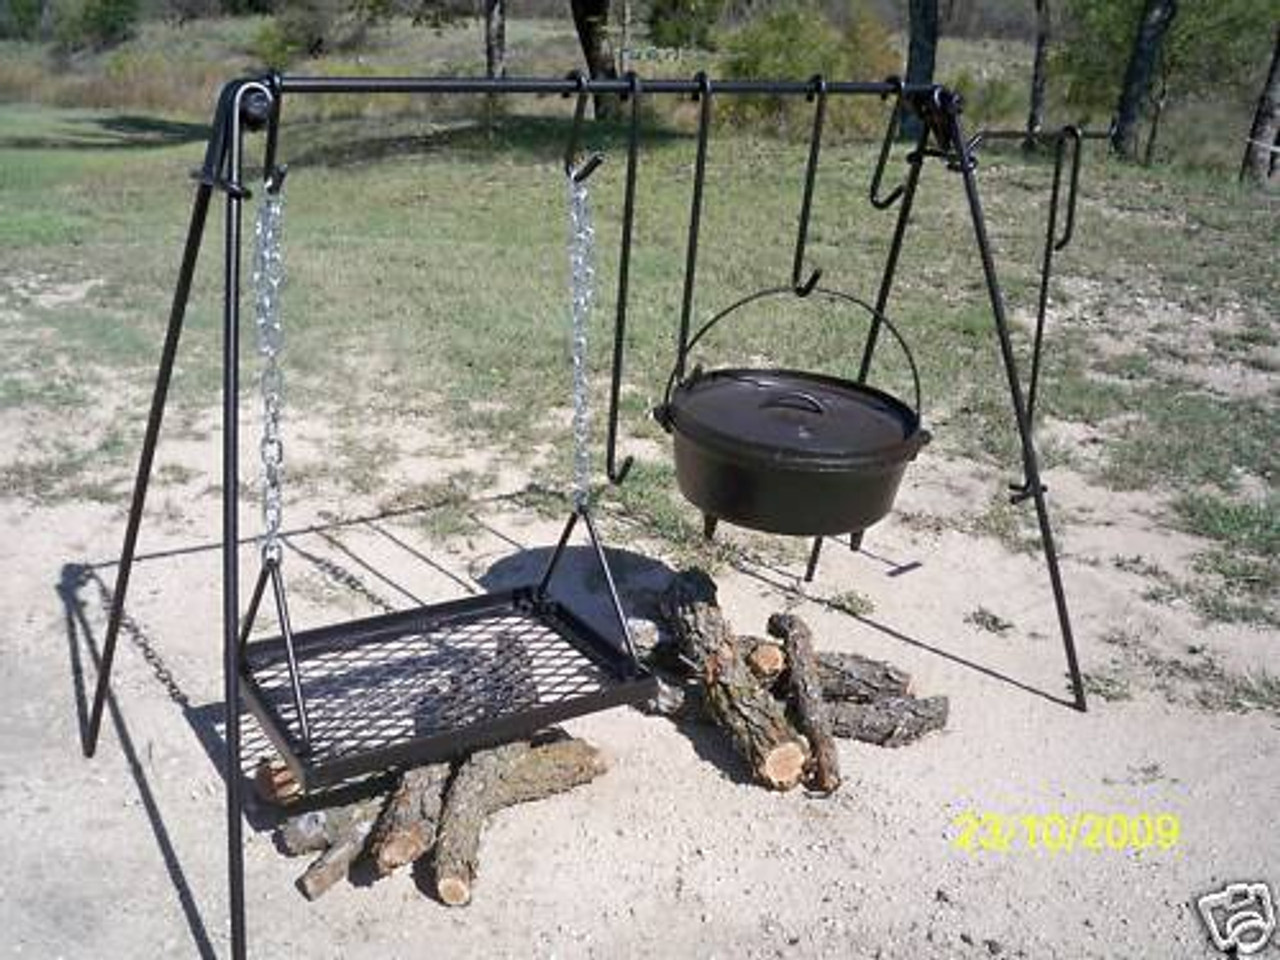 Dutch Oven & Grill Cook Set